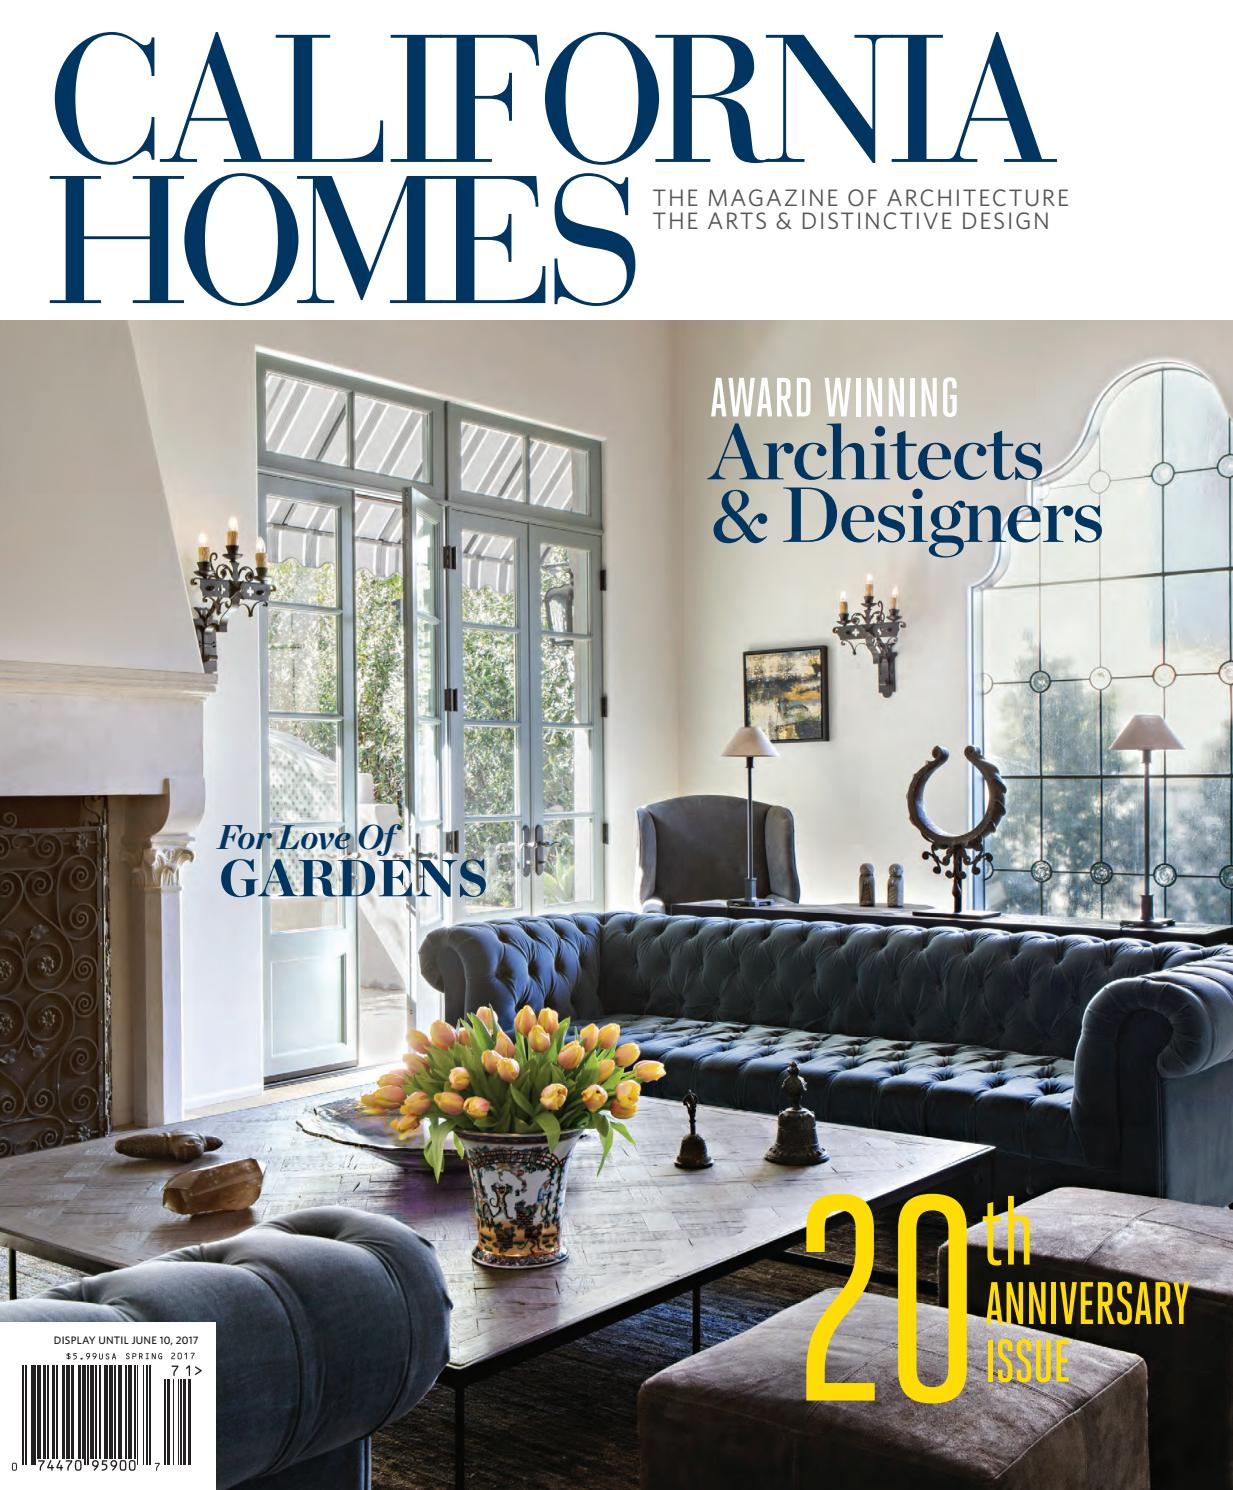 California homes spring 2017 by california homes for California home and design magazine